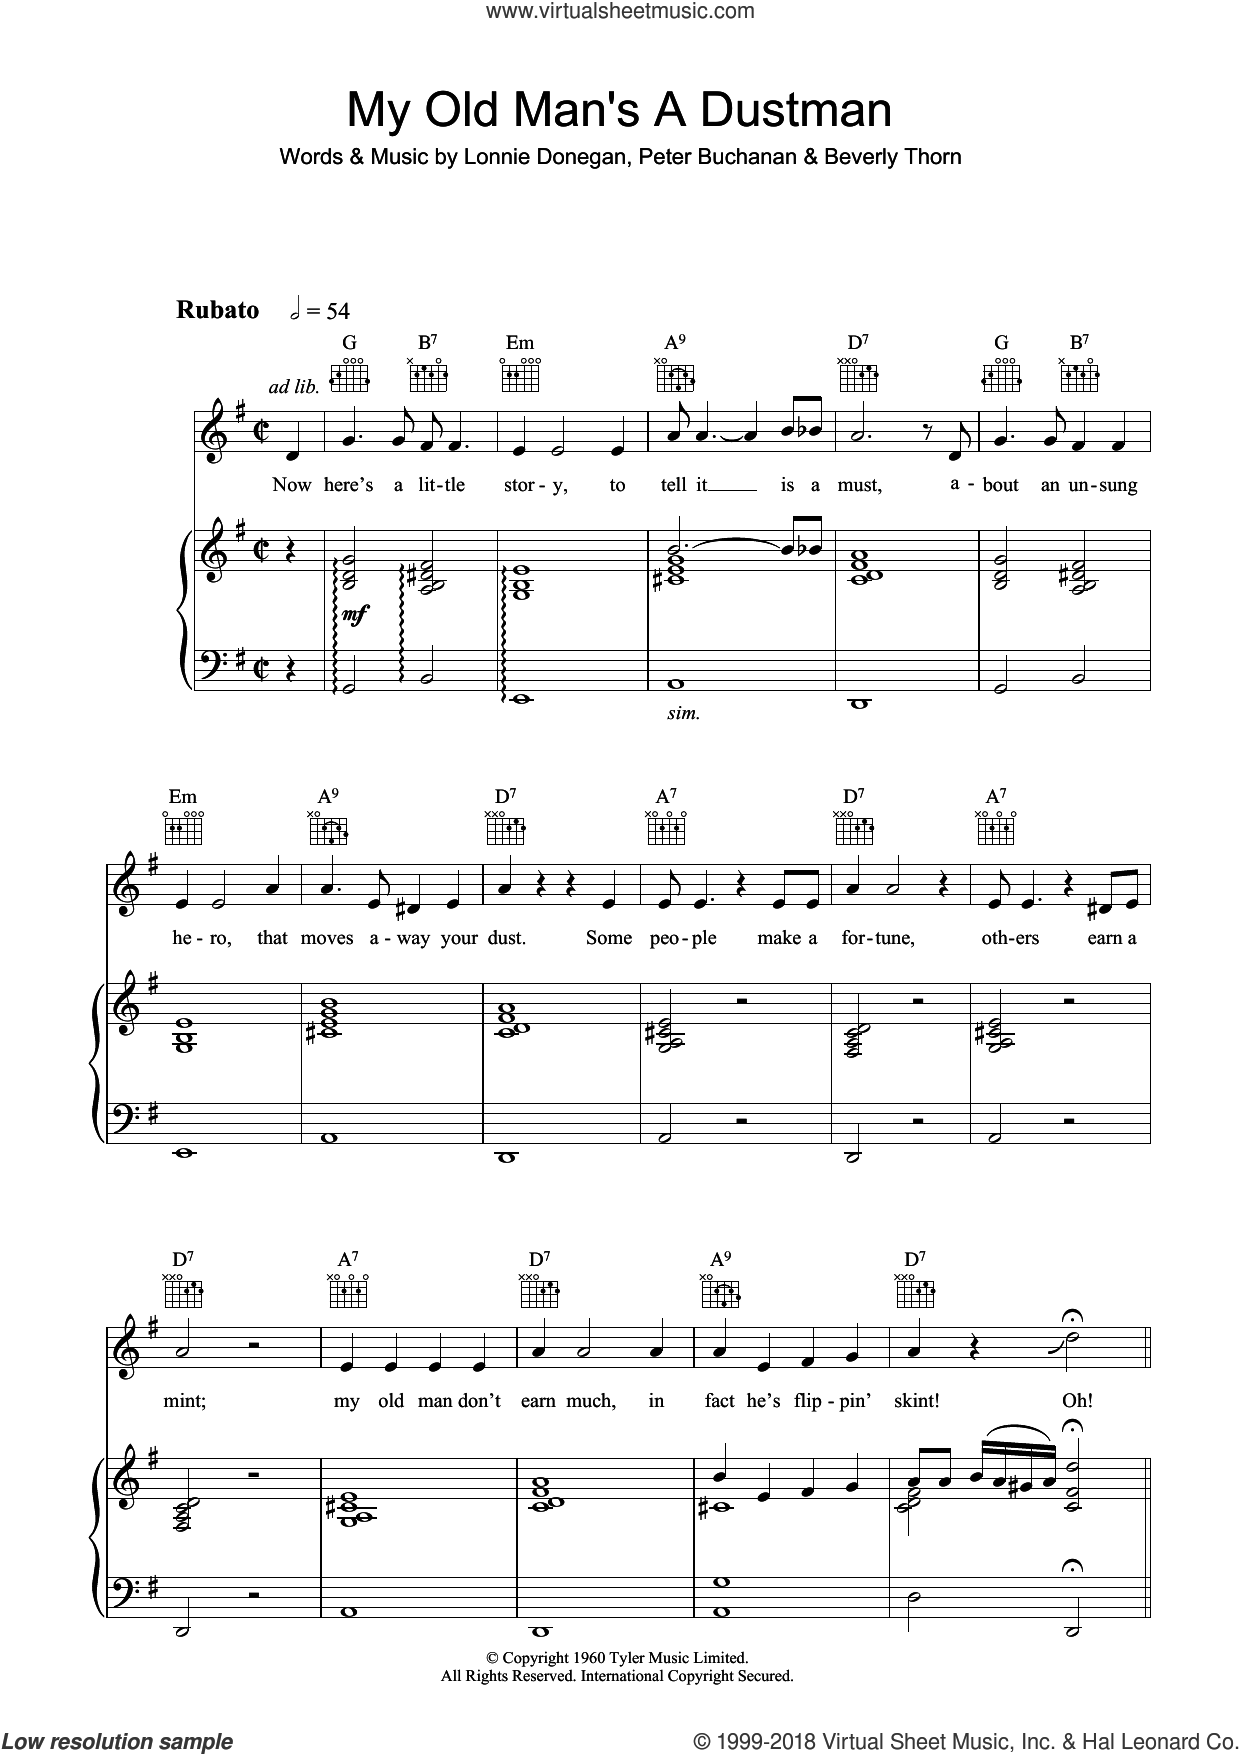 My Old Man's A Dustman sheet music for voice, piano or guitar by Lonnie Donegan, Beverly Thorn and Peter Buchanan, intermediate skill level